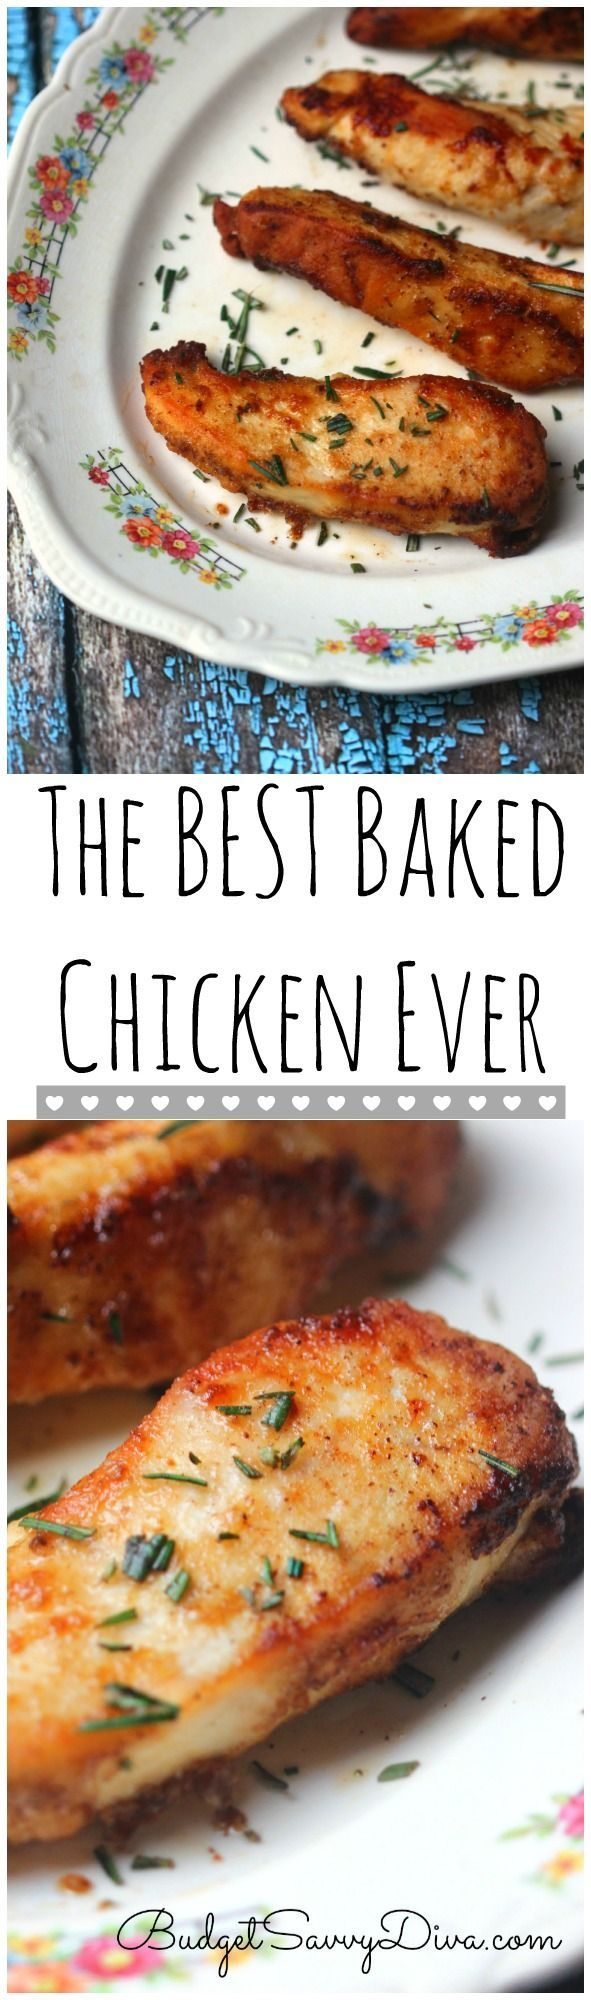 The Best Baked Chicken Ever Recipe – Marie Recipe  To make carb free use coconut flour or almond flour.